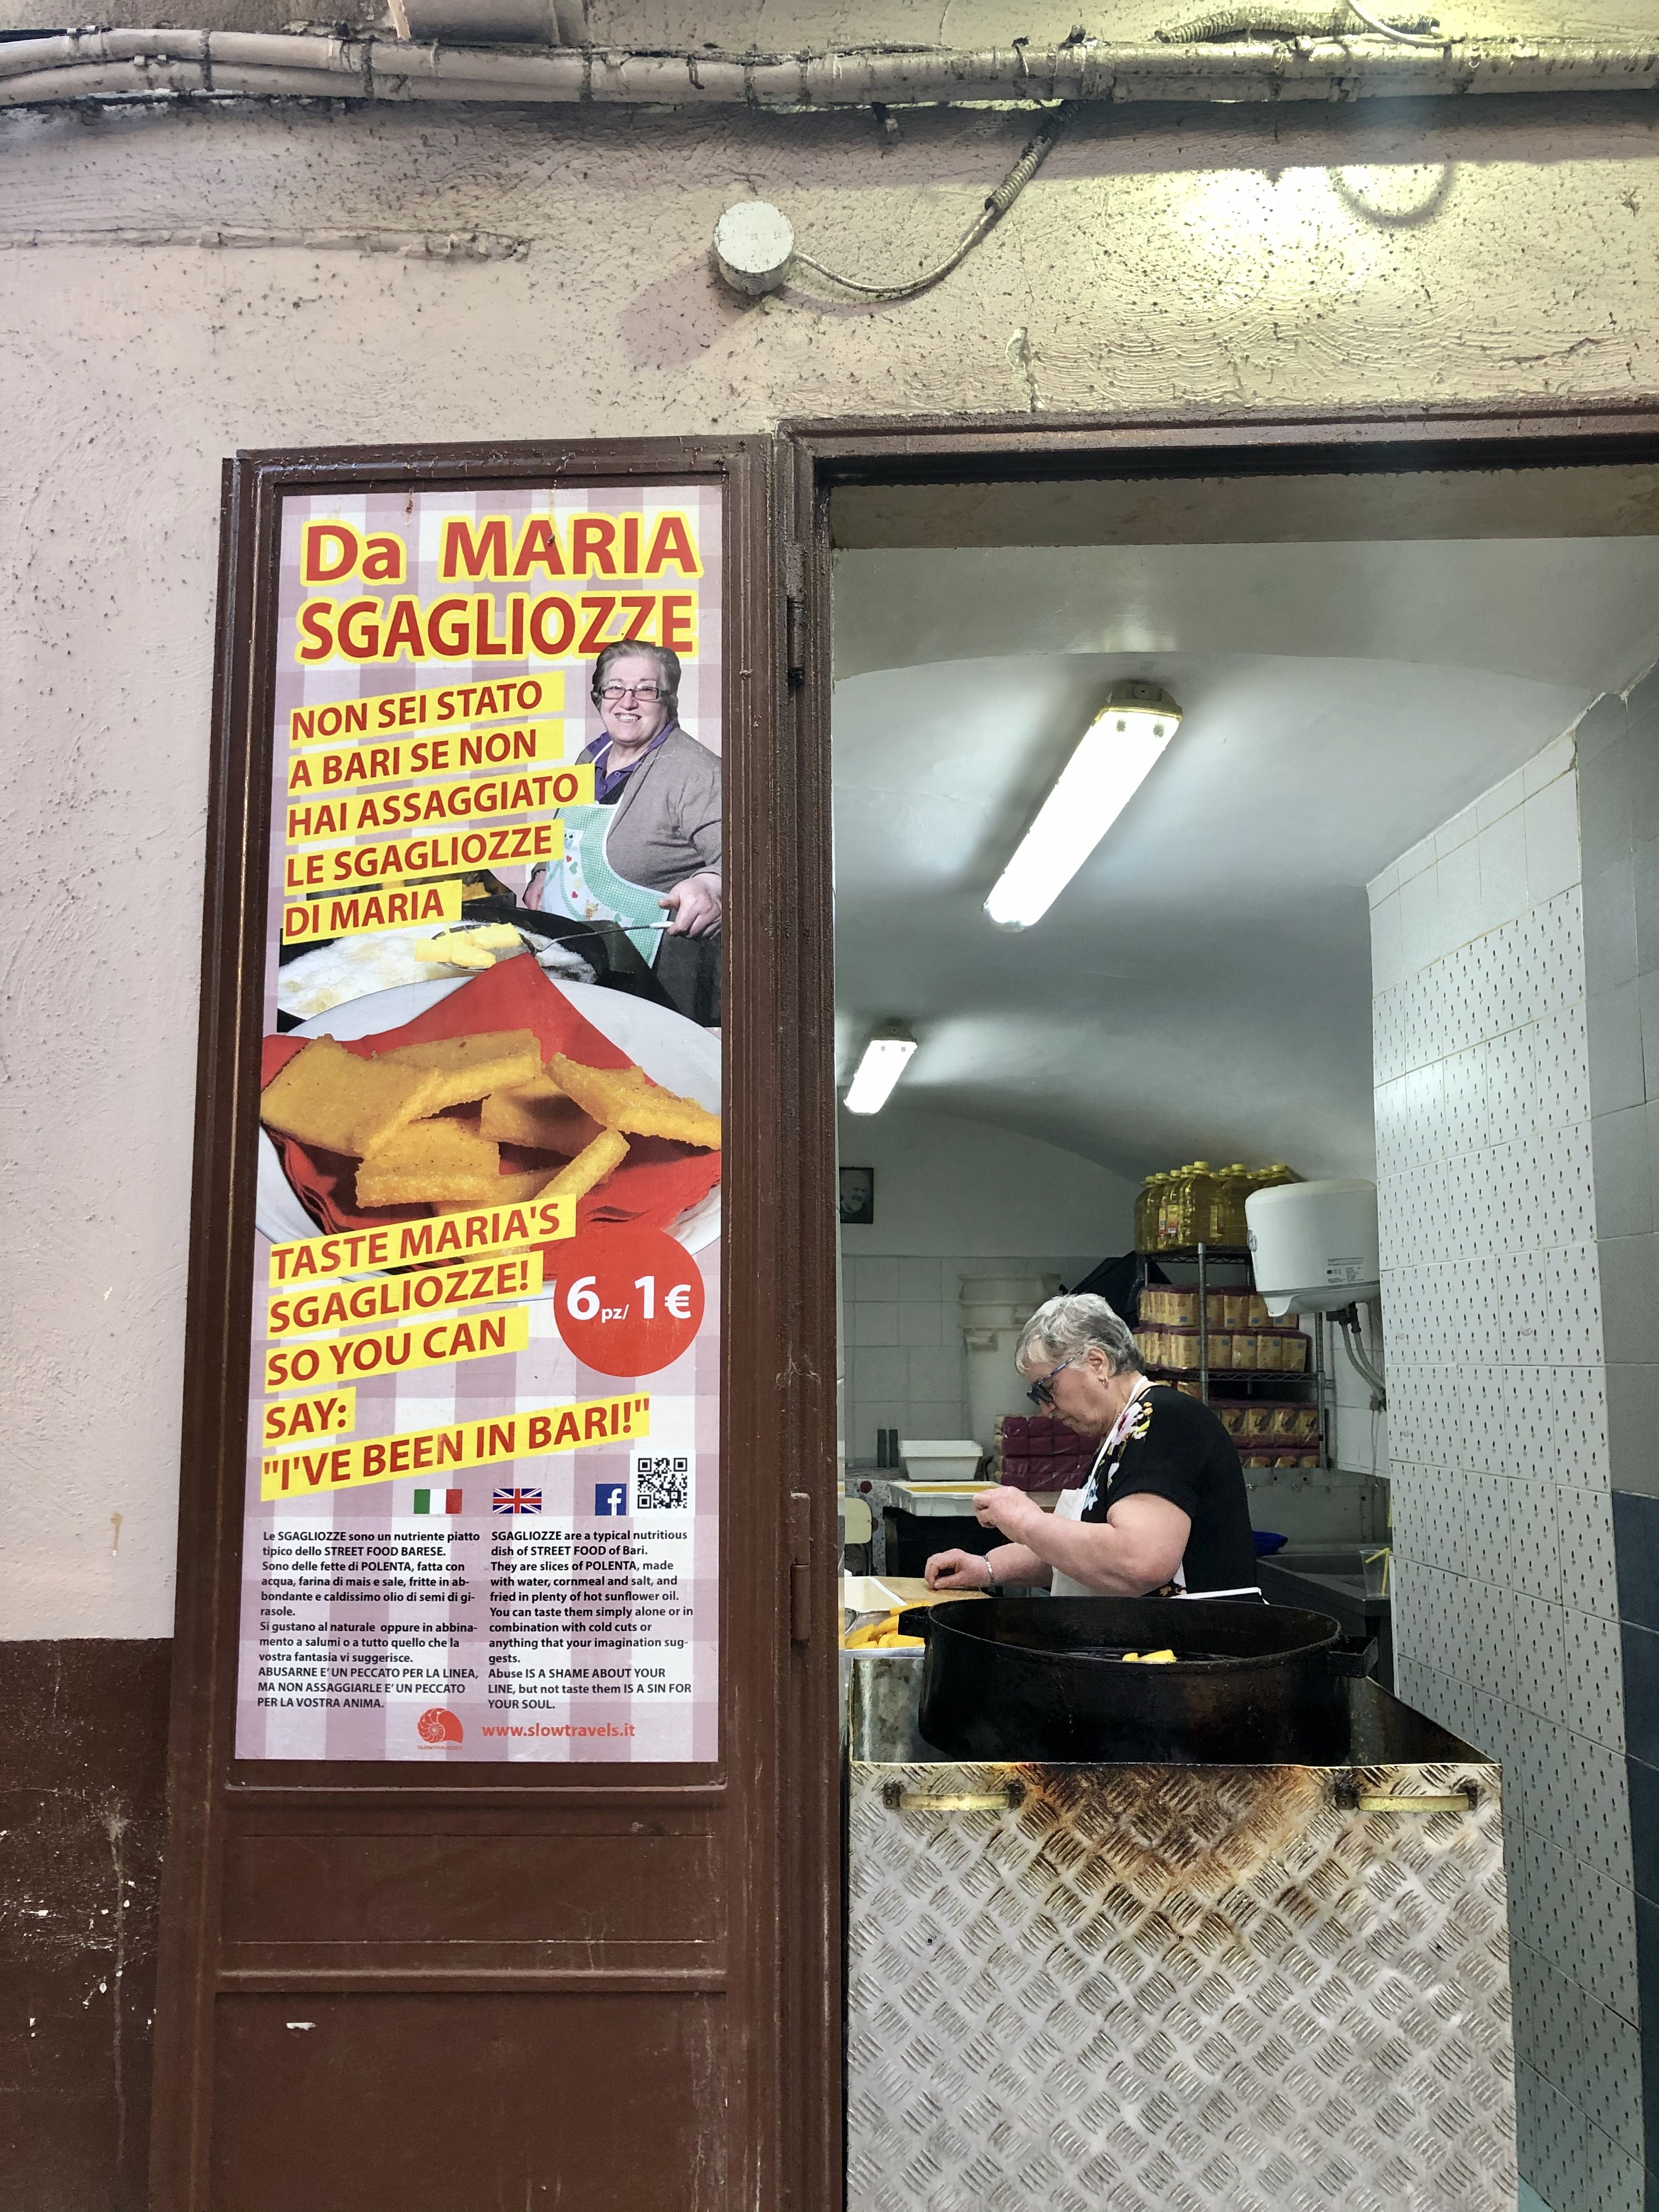 Maria working at the fryer next to a poster advertising her sgagliozze.